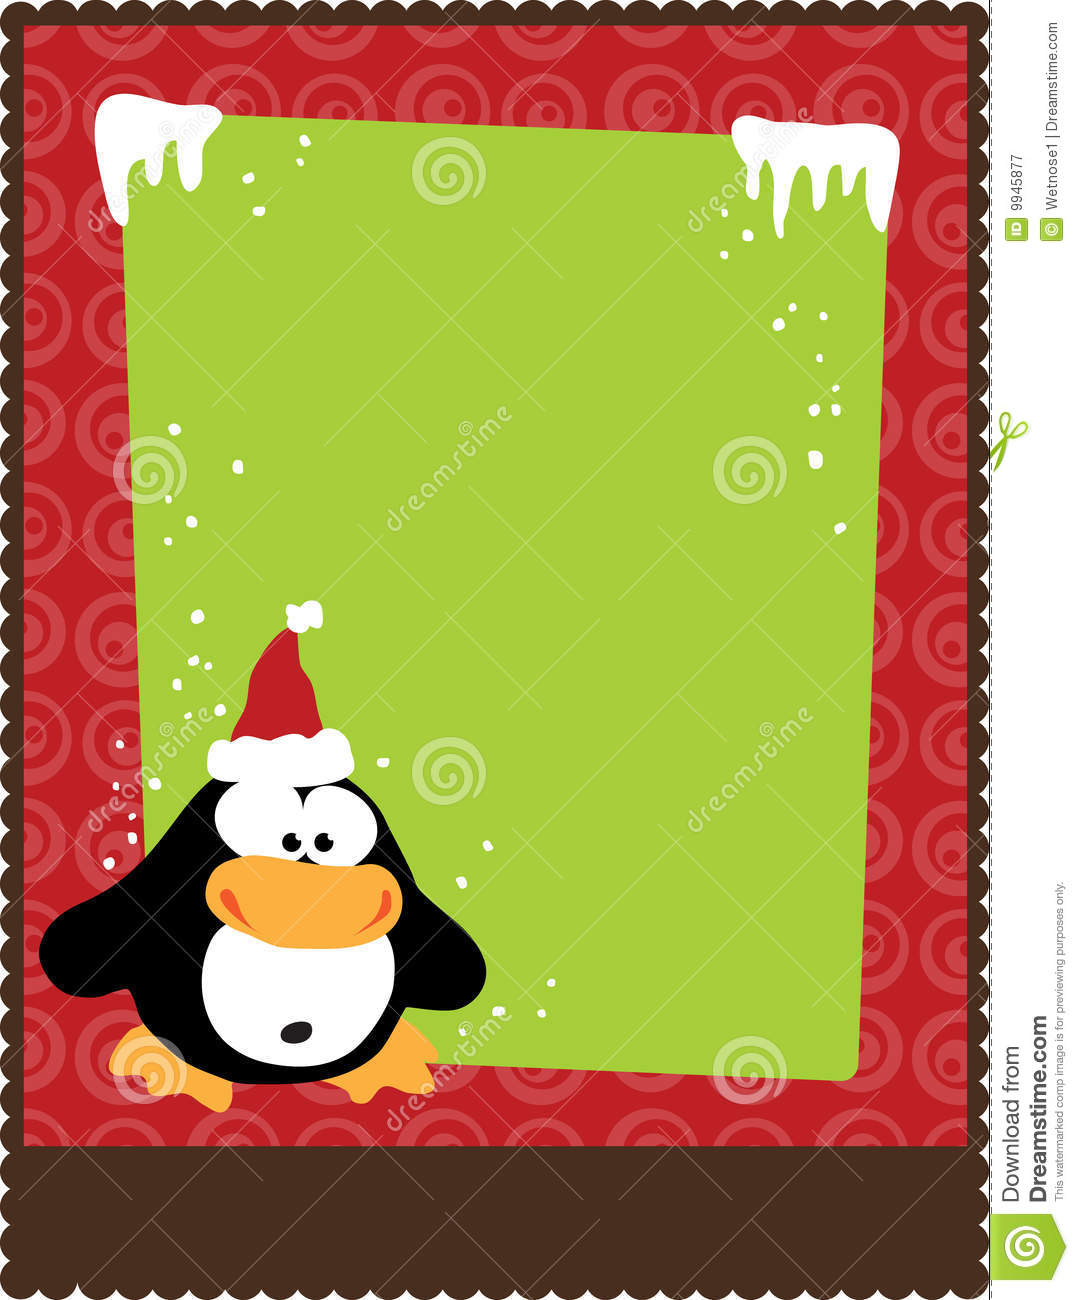 blank party flyer backgrounds images 5x11 christmas new year flyer royalty stock photography image